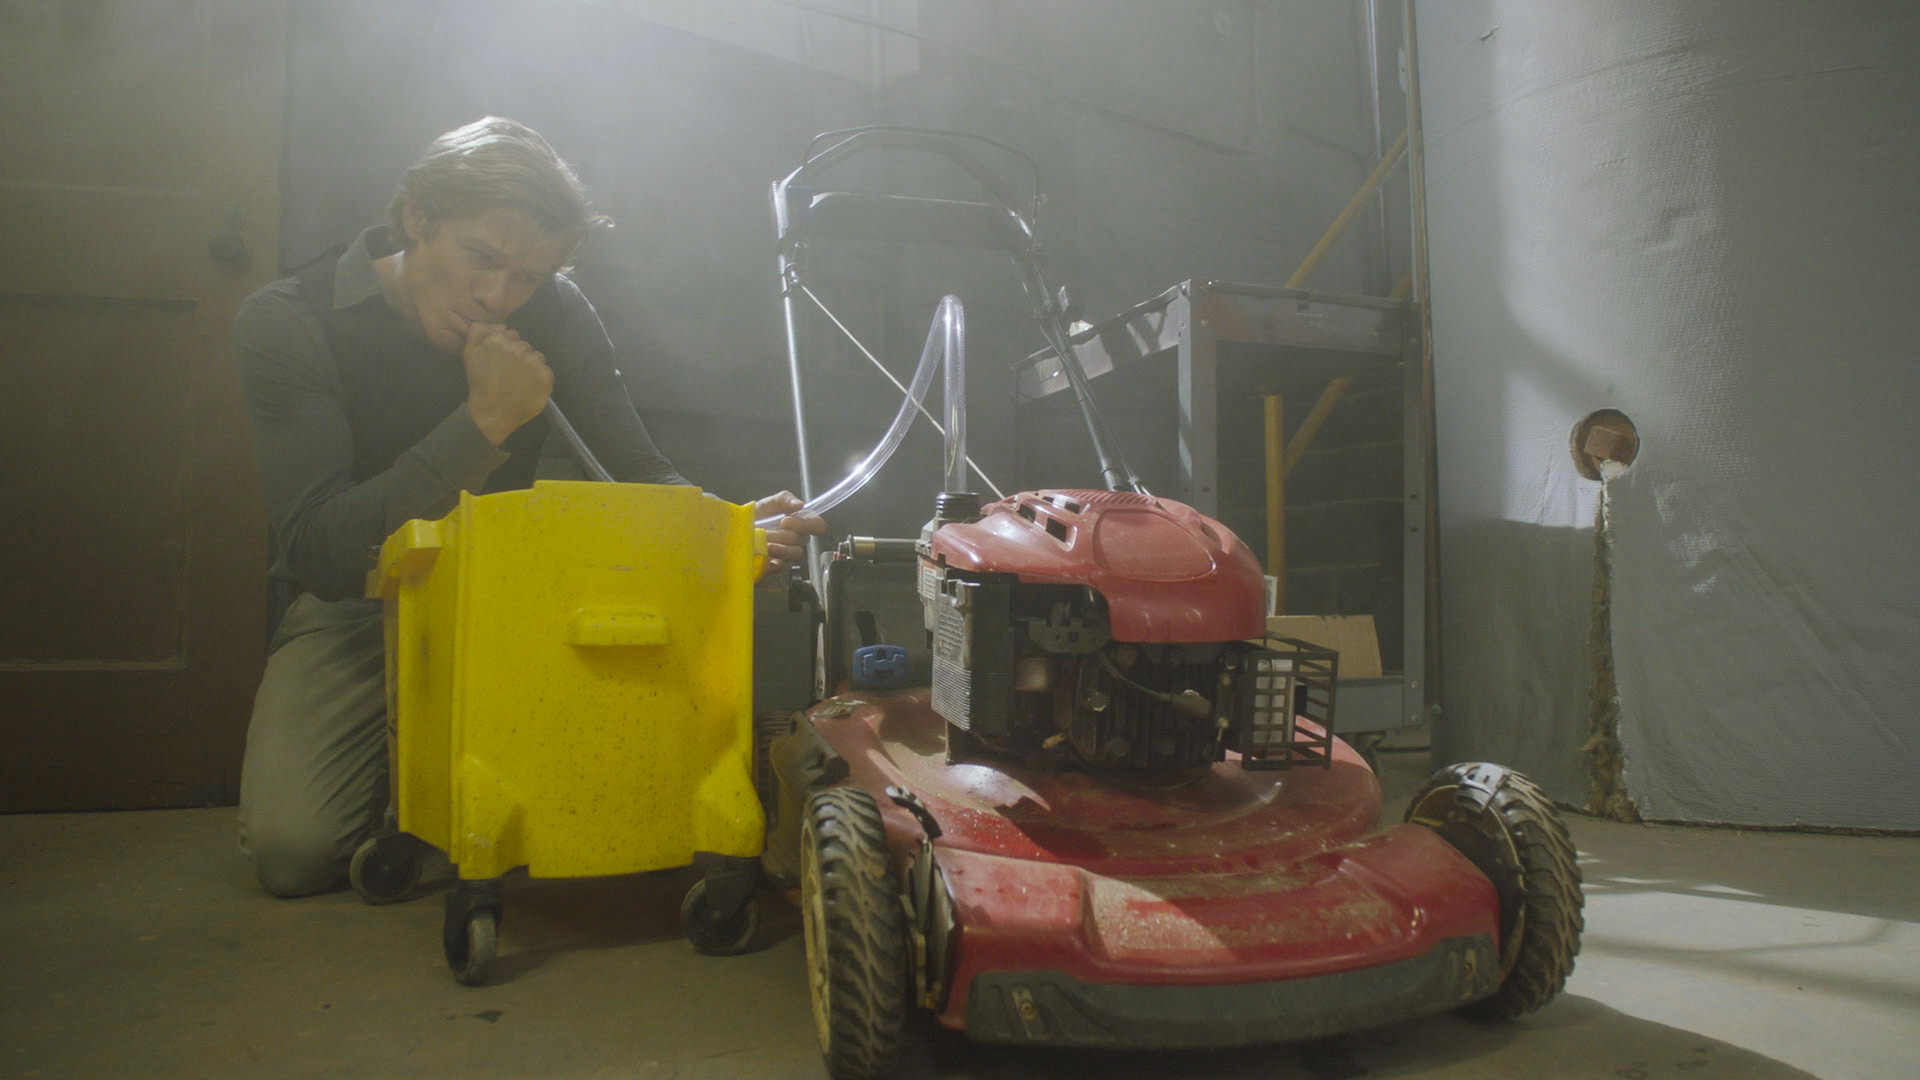 MacGyver finds a creative way to use an old lawnmower.